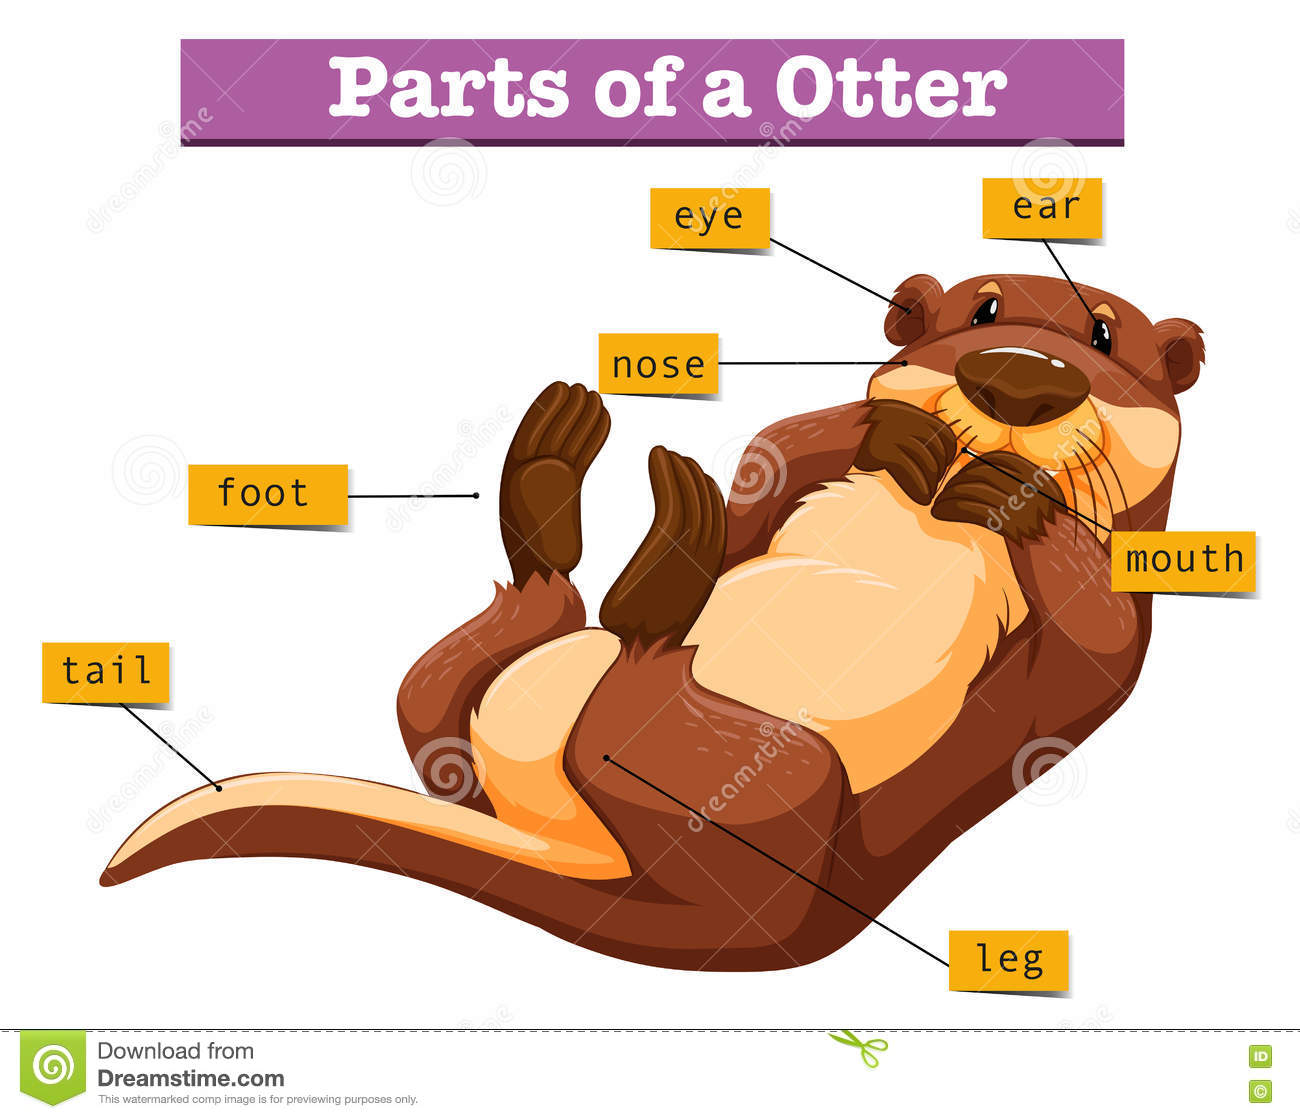 hight resolution of diagram showing parts of otter